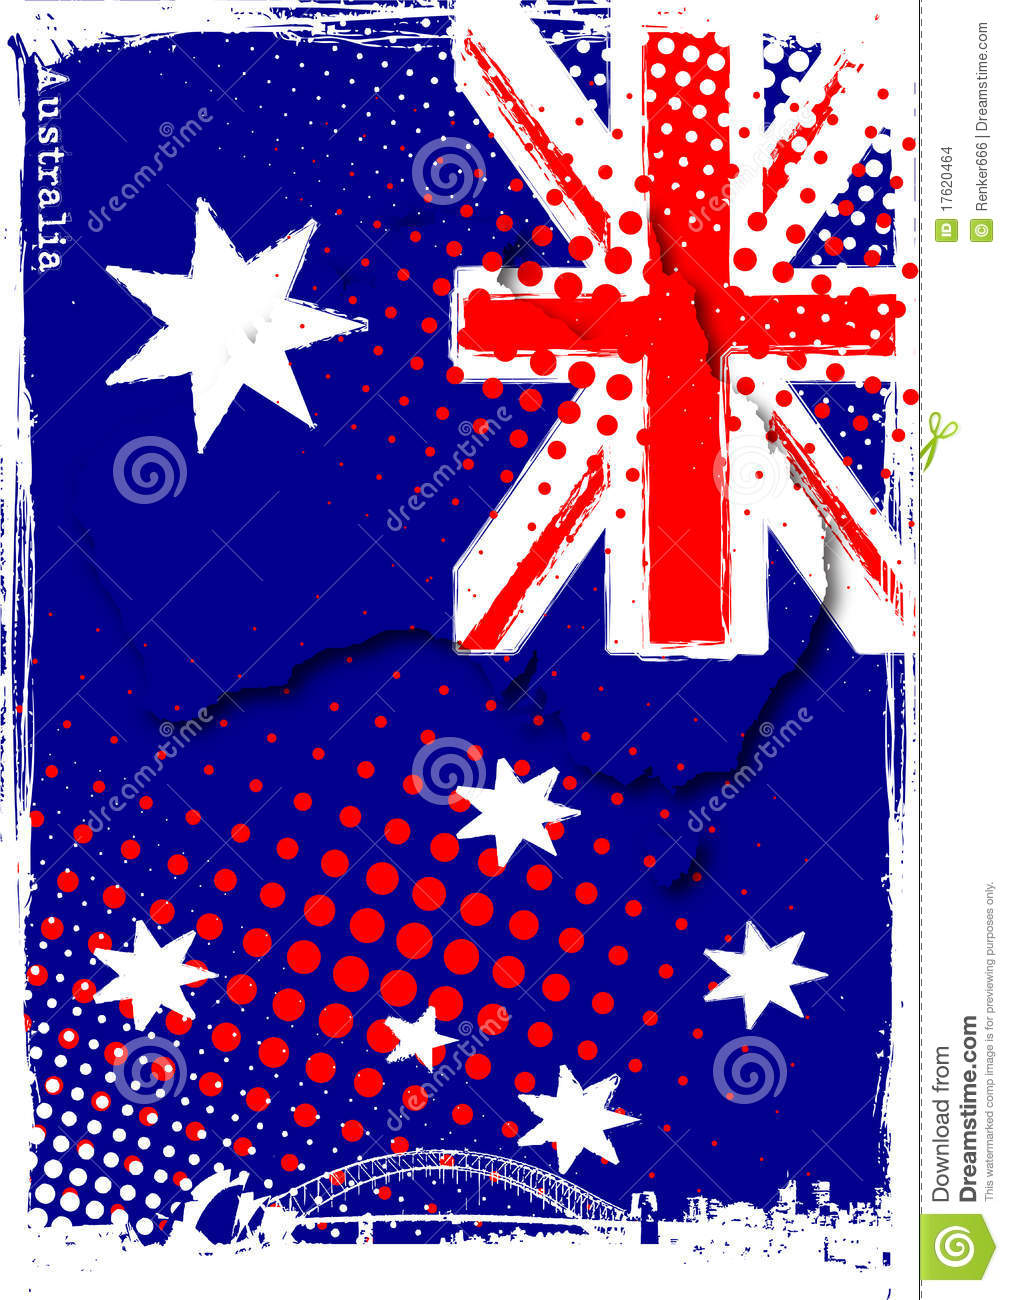 Large map of australia poster thaye unakkaga tamil movie songs australia classic map laminated poster laminatedover 5900000 posters prints great selection price free large 5 pieces butterfly orchid gumiabroncs Choice Image